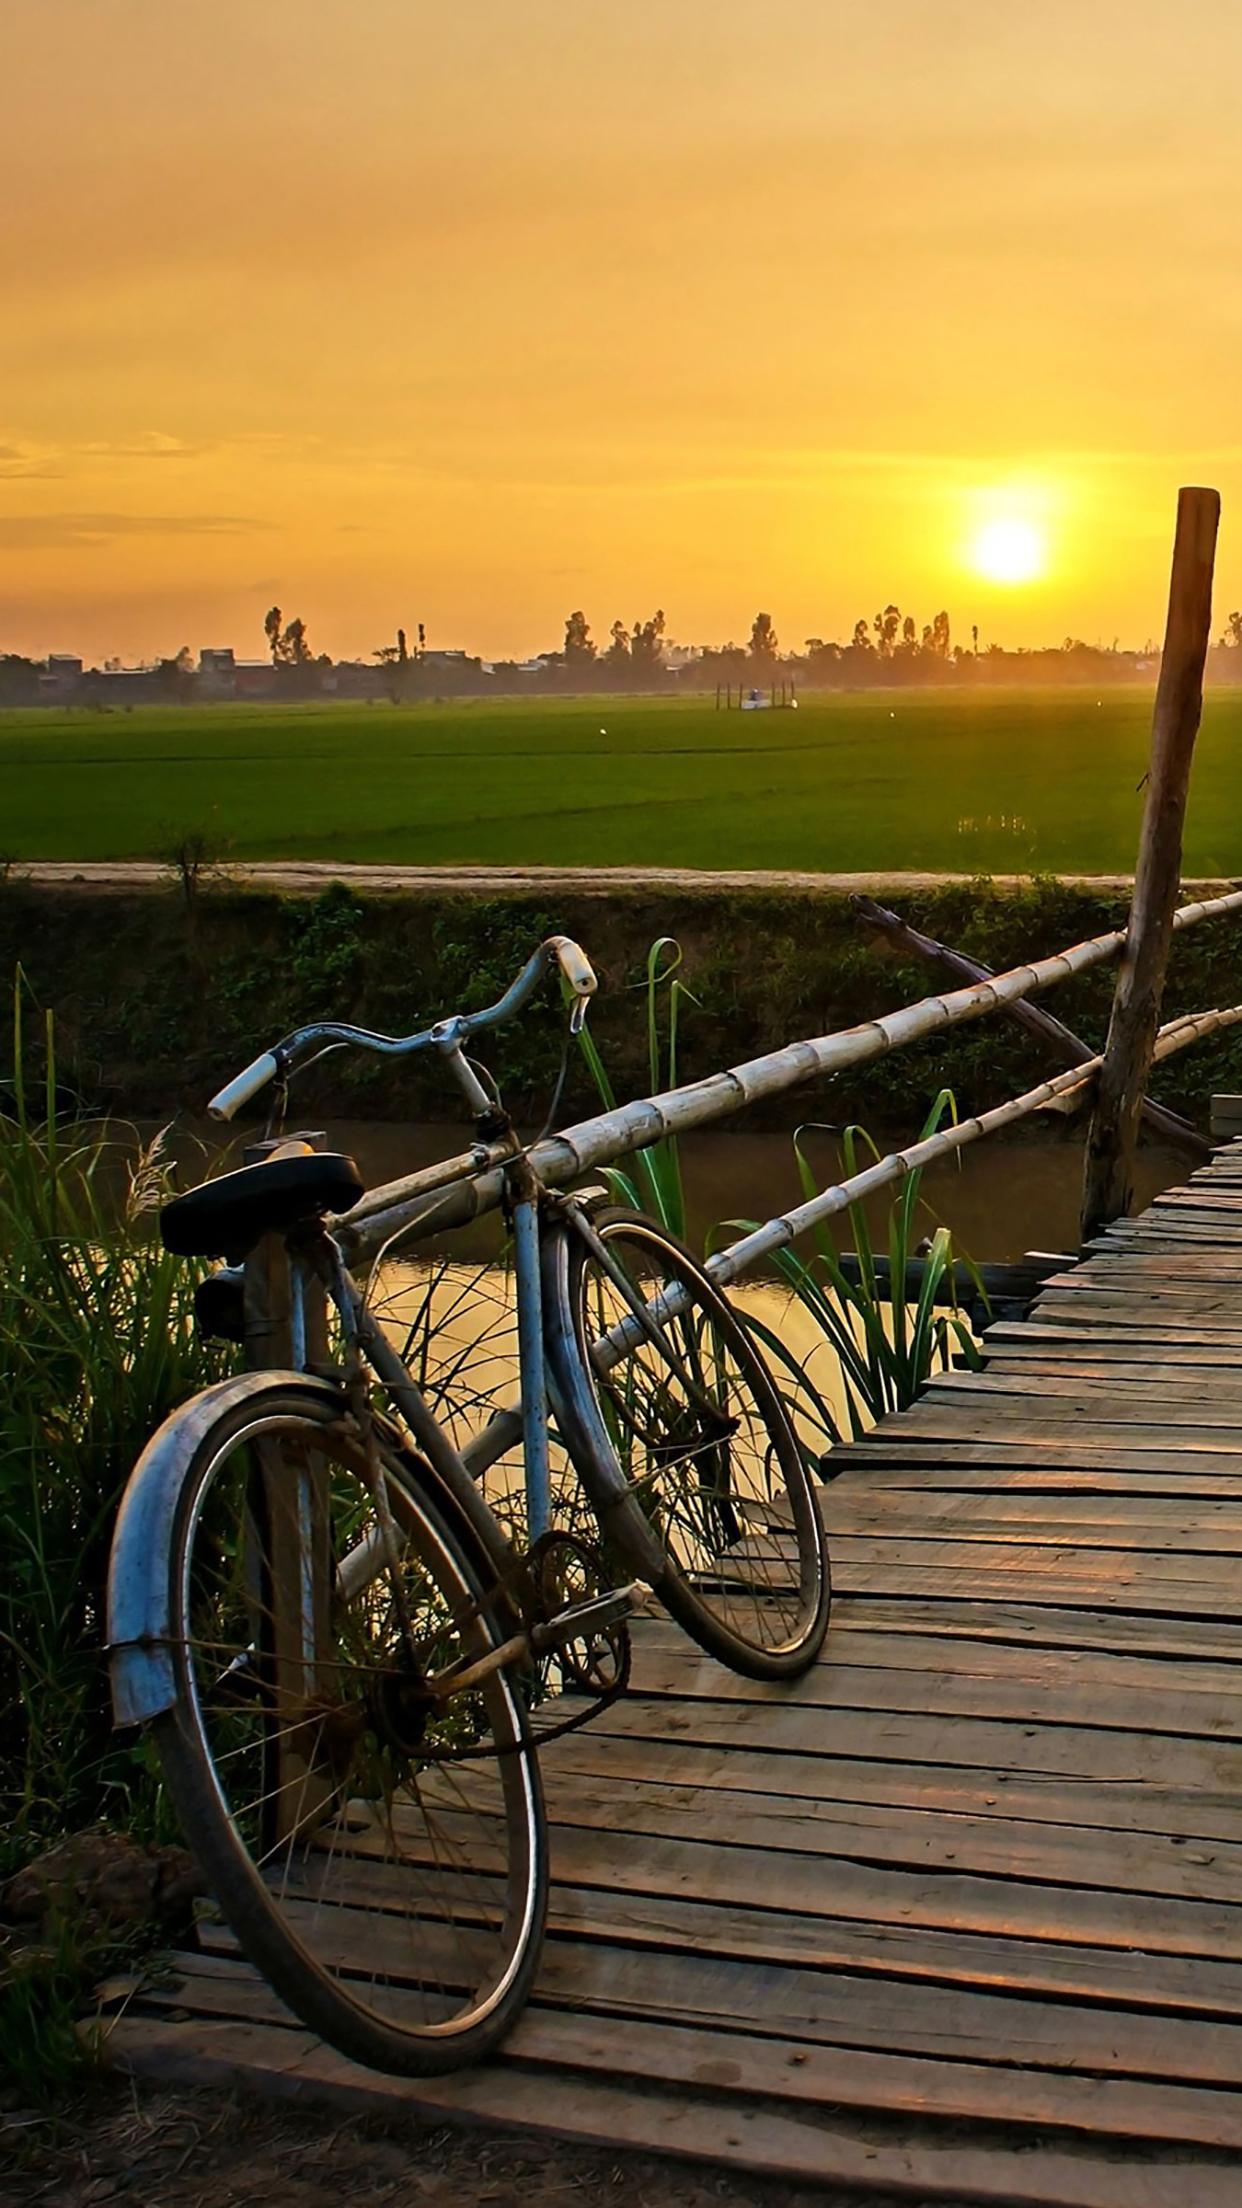 Bicycle 2 3Wallpapers iPhone Parallax Bicycle : 2